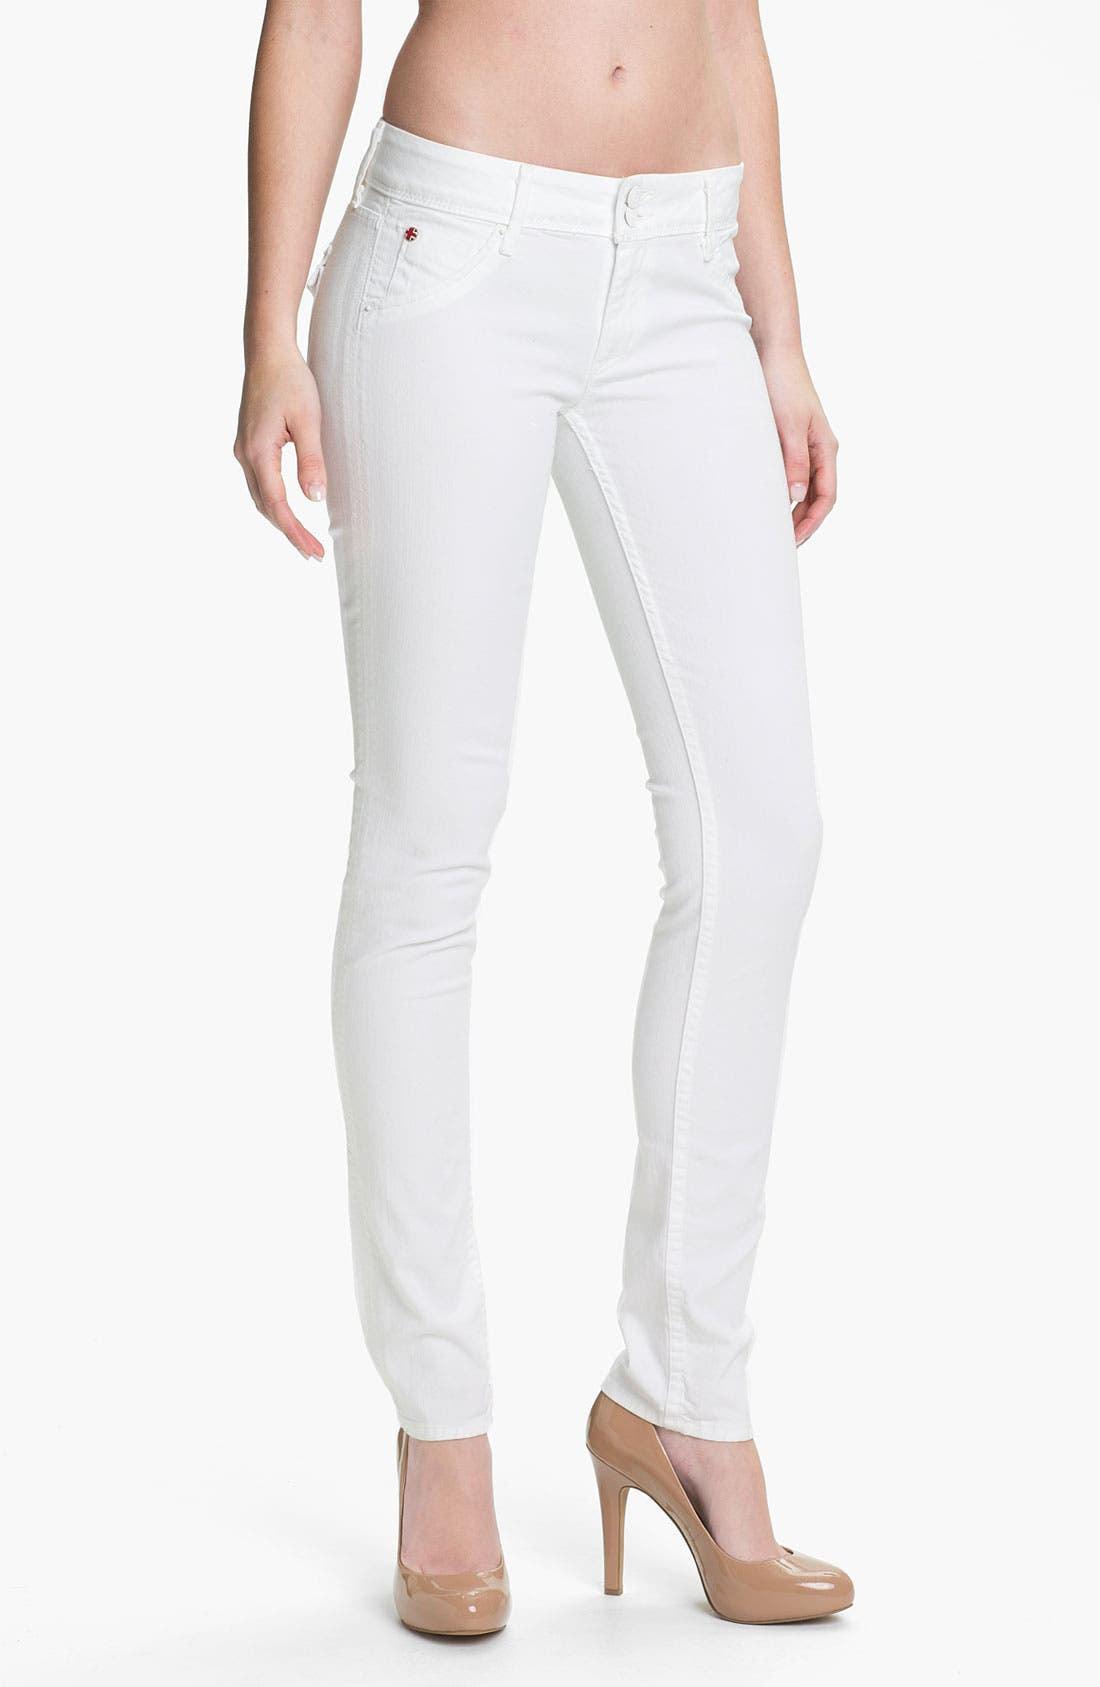 Alternate Image 1 Selected - Hudson Jeans Skinny Stretch Jeans (New White Wash)